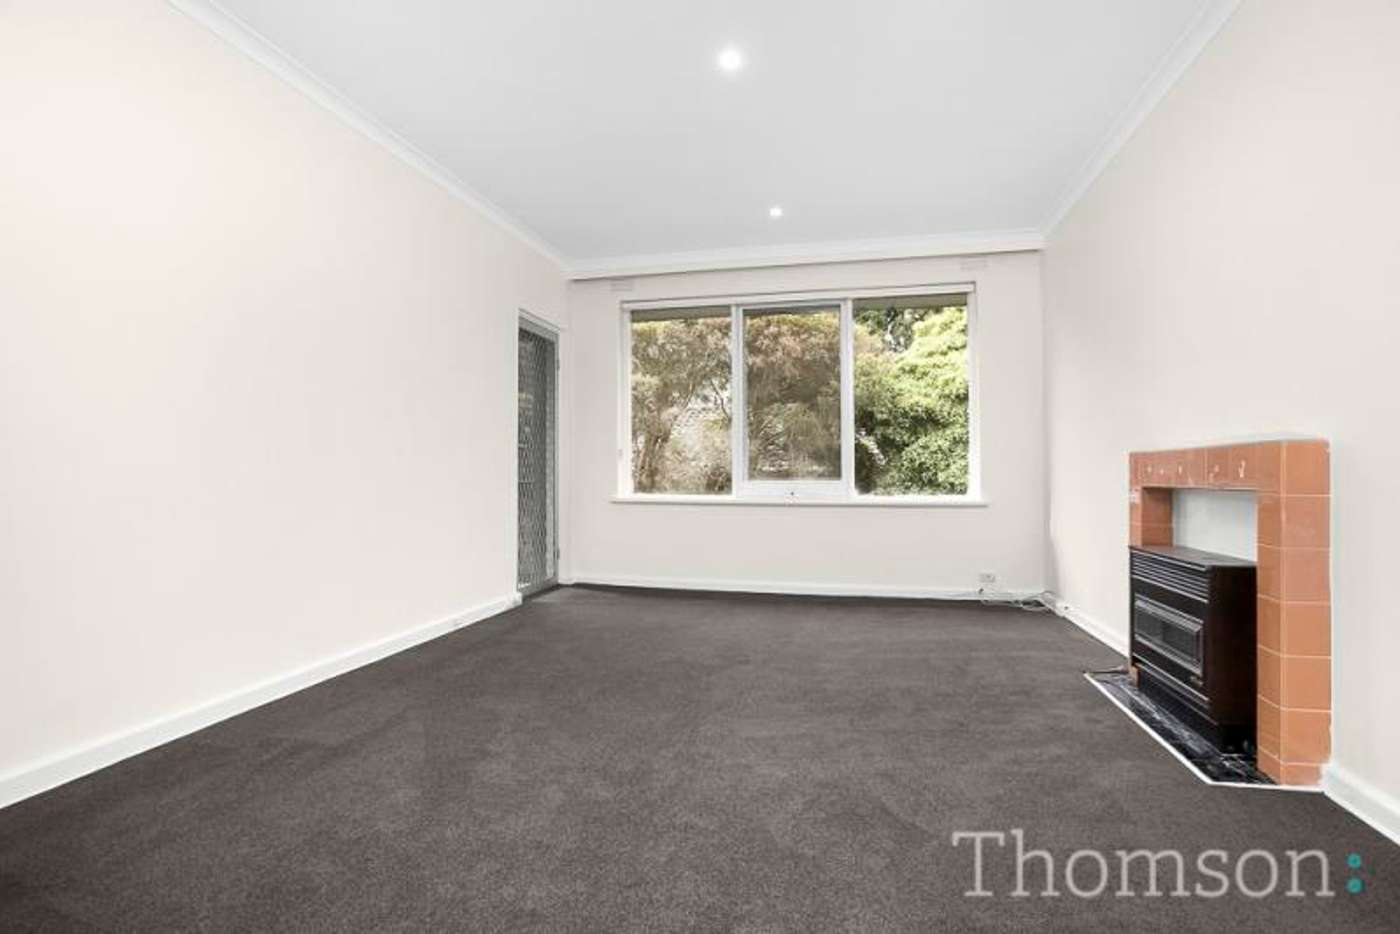 Main view of Homely apartment listing, 7/42 Scott Grove, Glen Iris VIC 3146